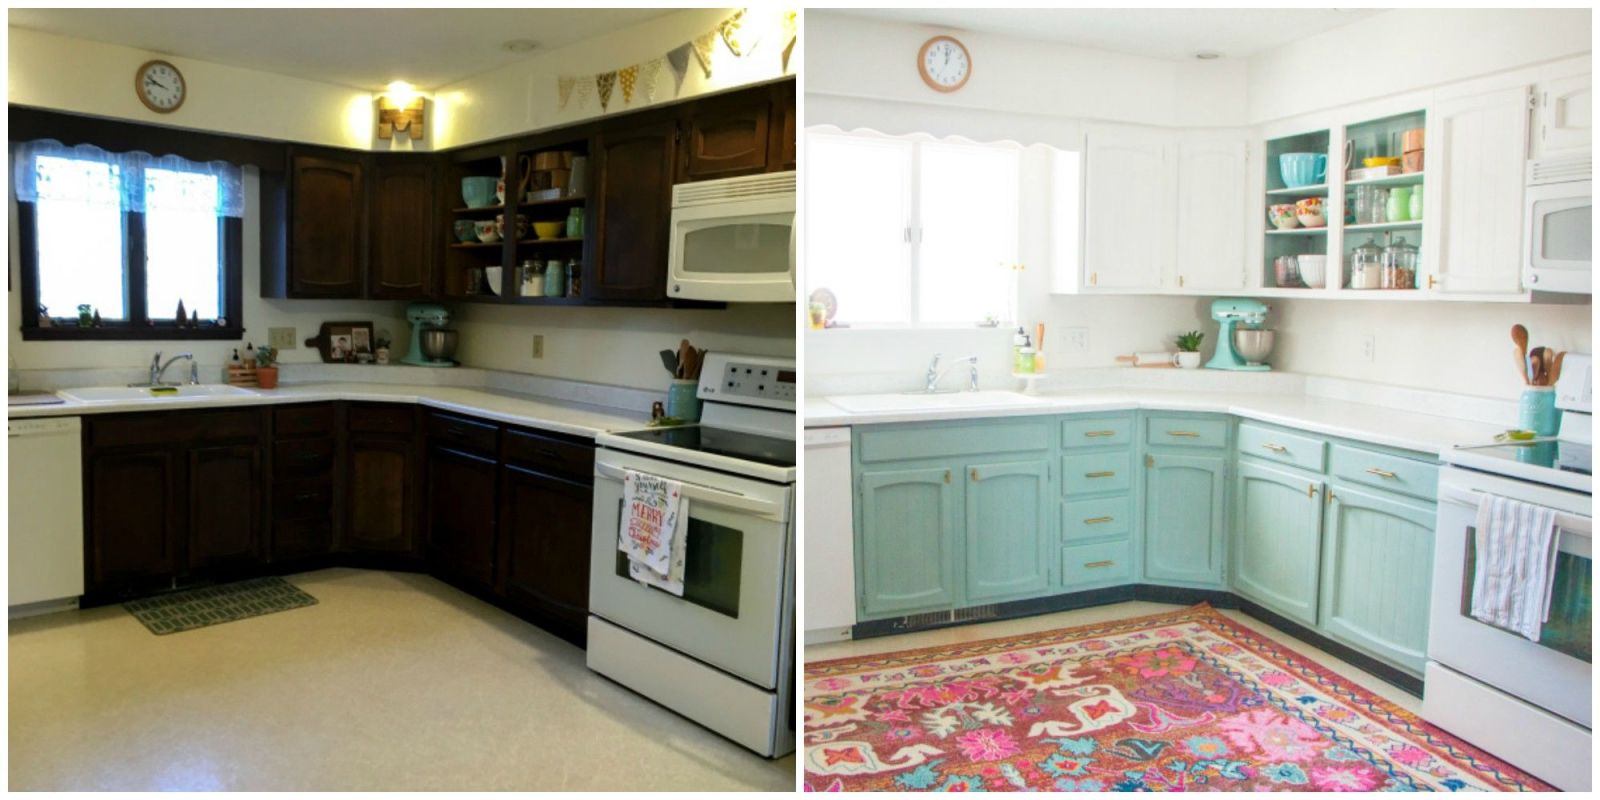 Remodel Pictures Before And After remodeled homes before and after 50 inspirational home remodel